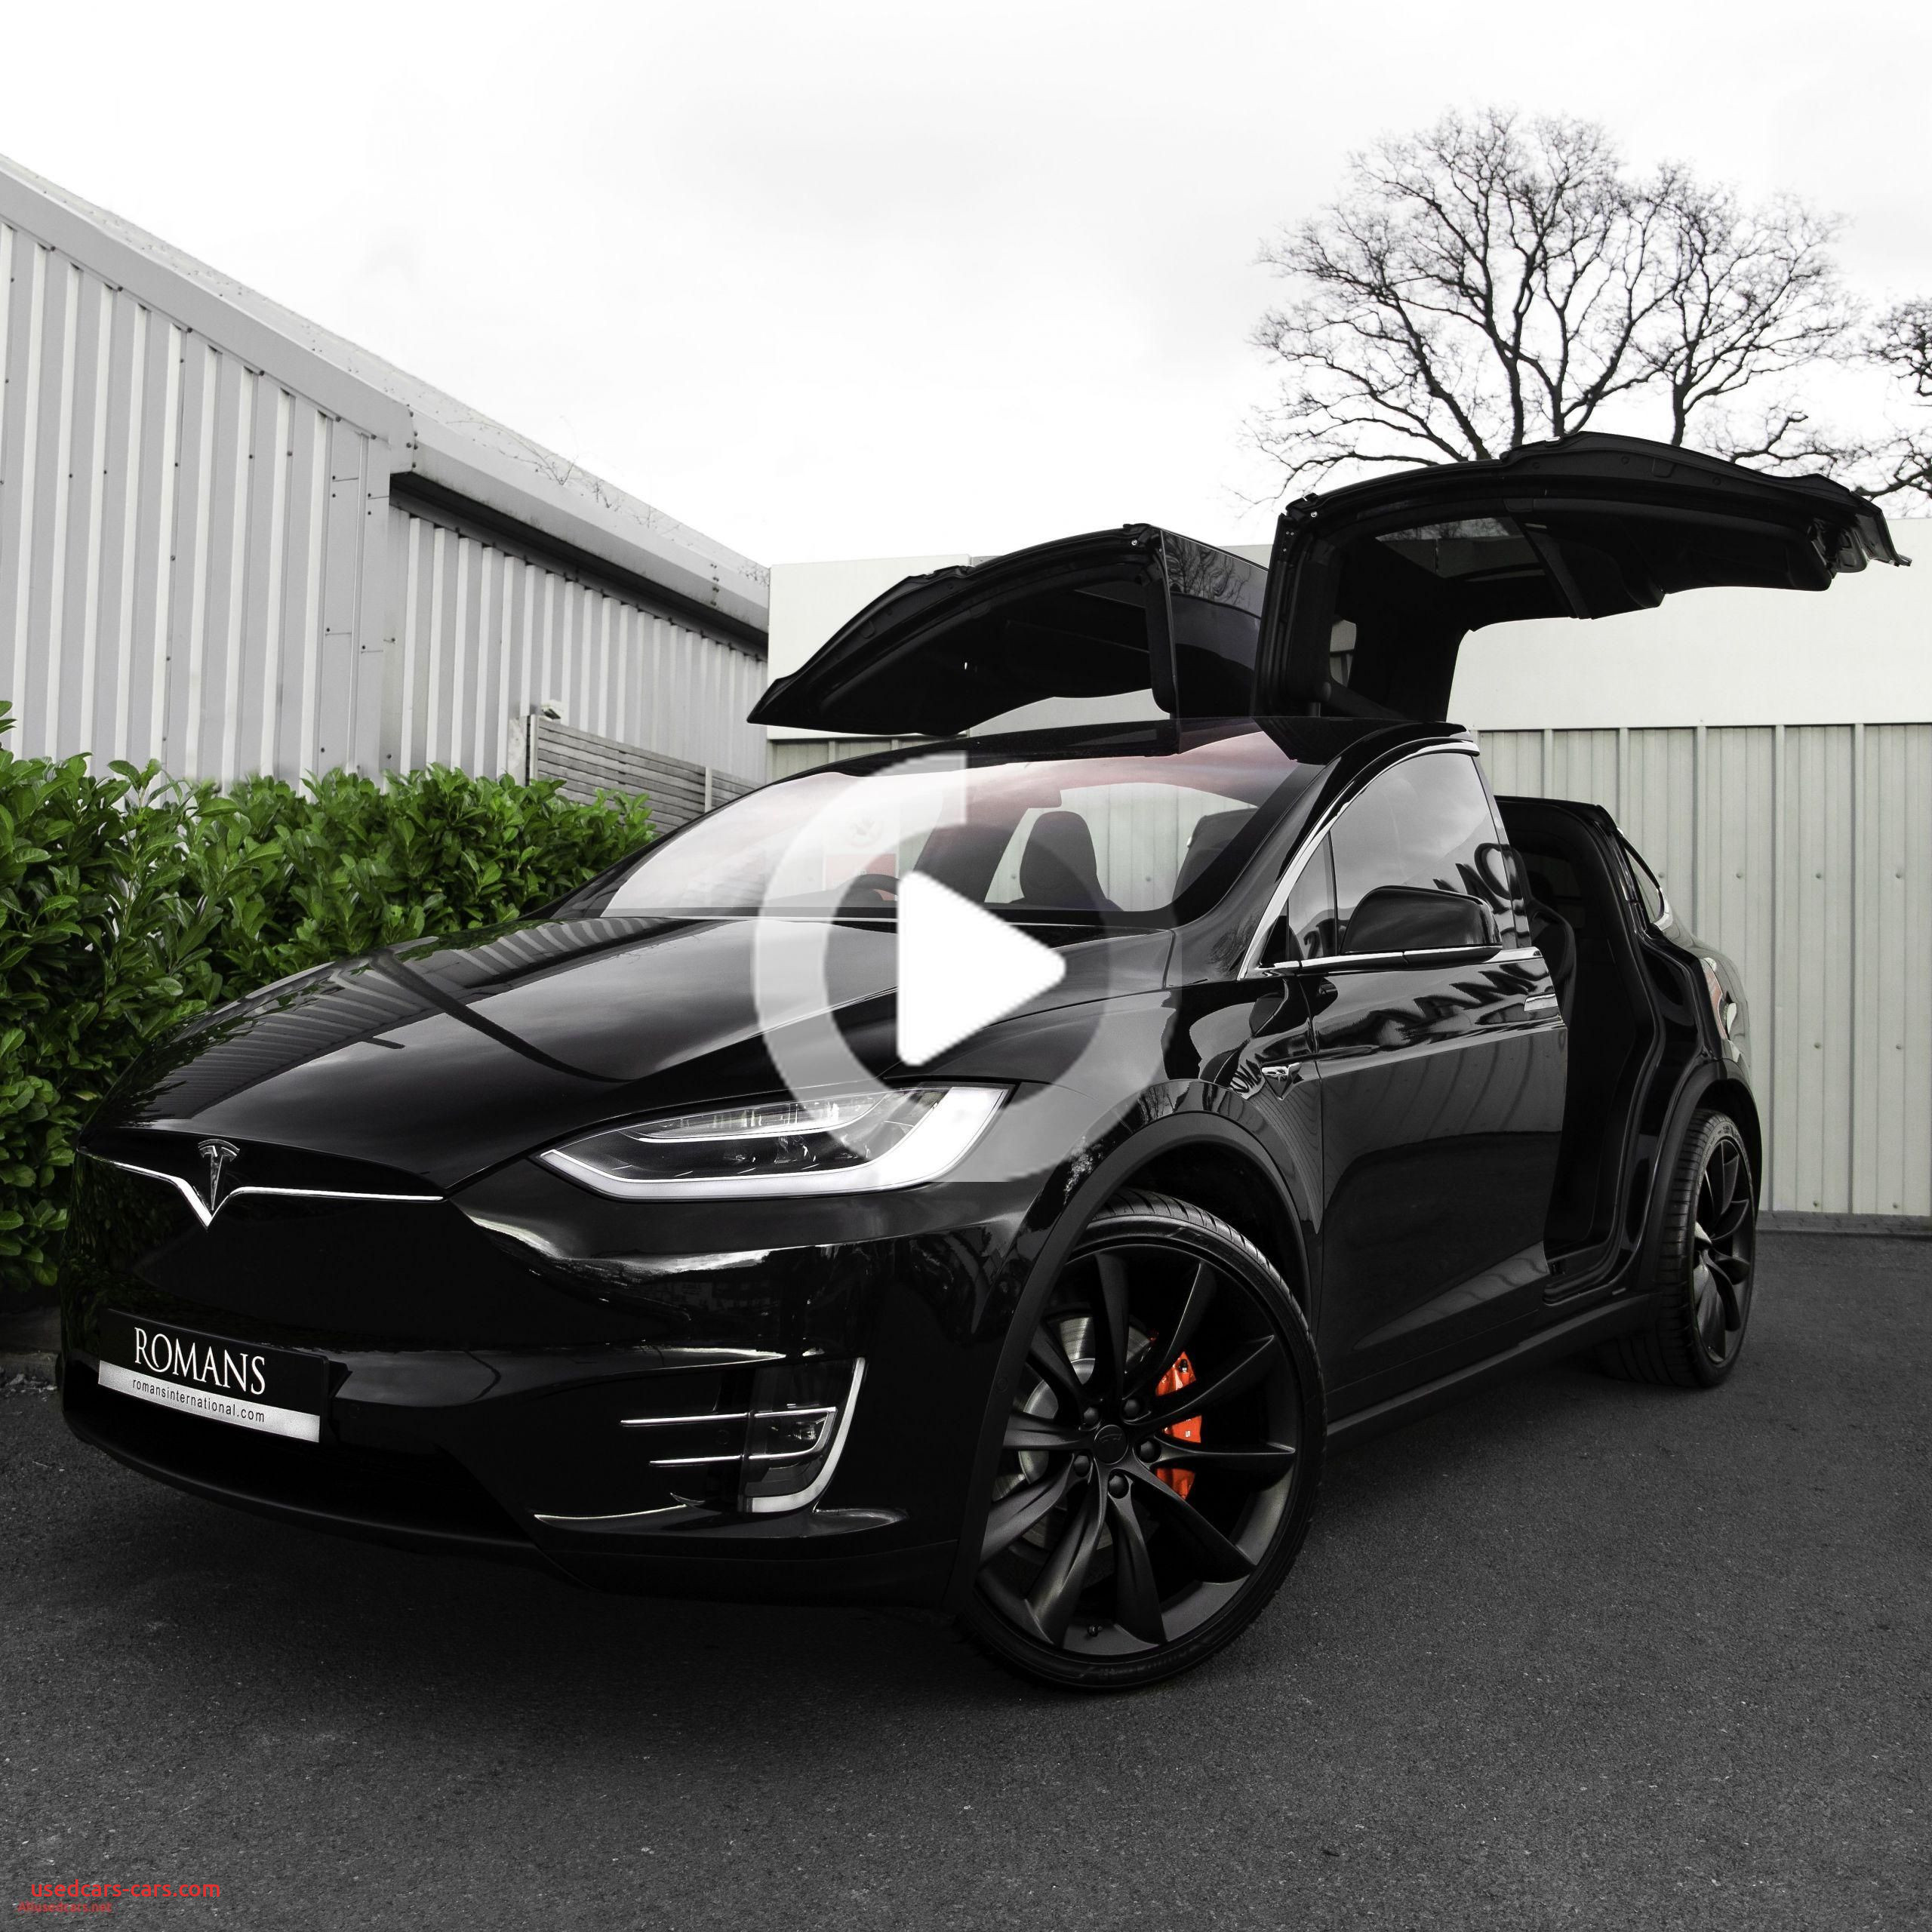 How Much is A New Tesla New which Tesla is the Cheapest ...